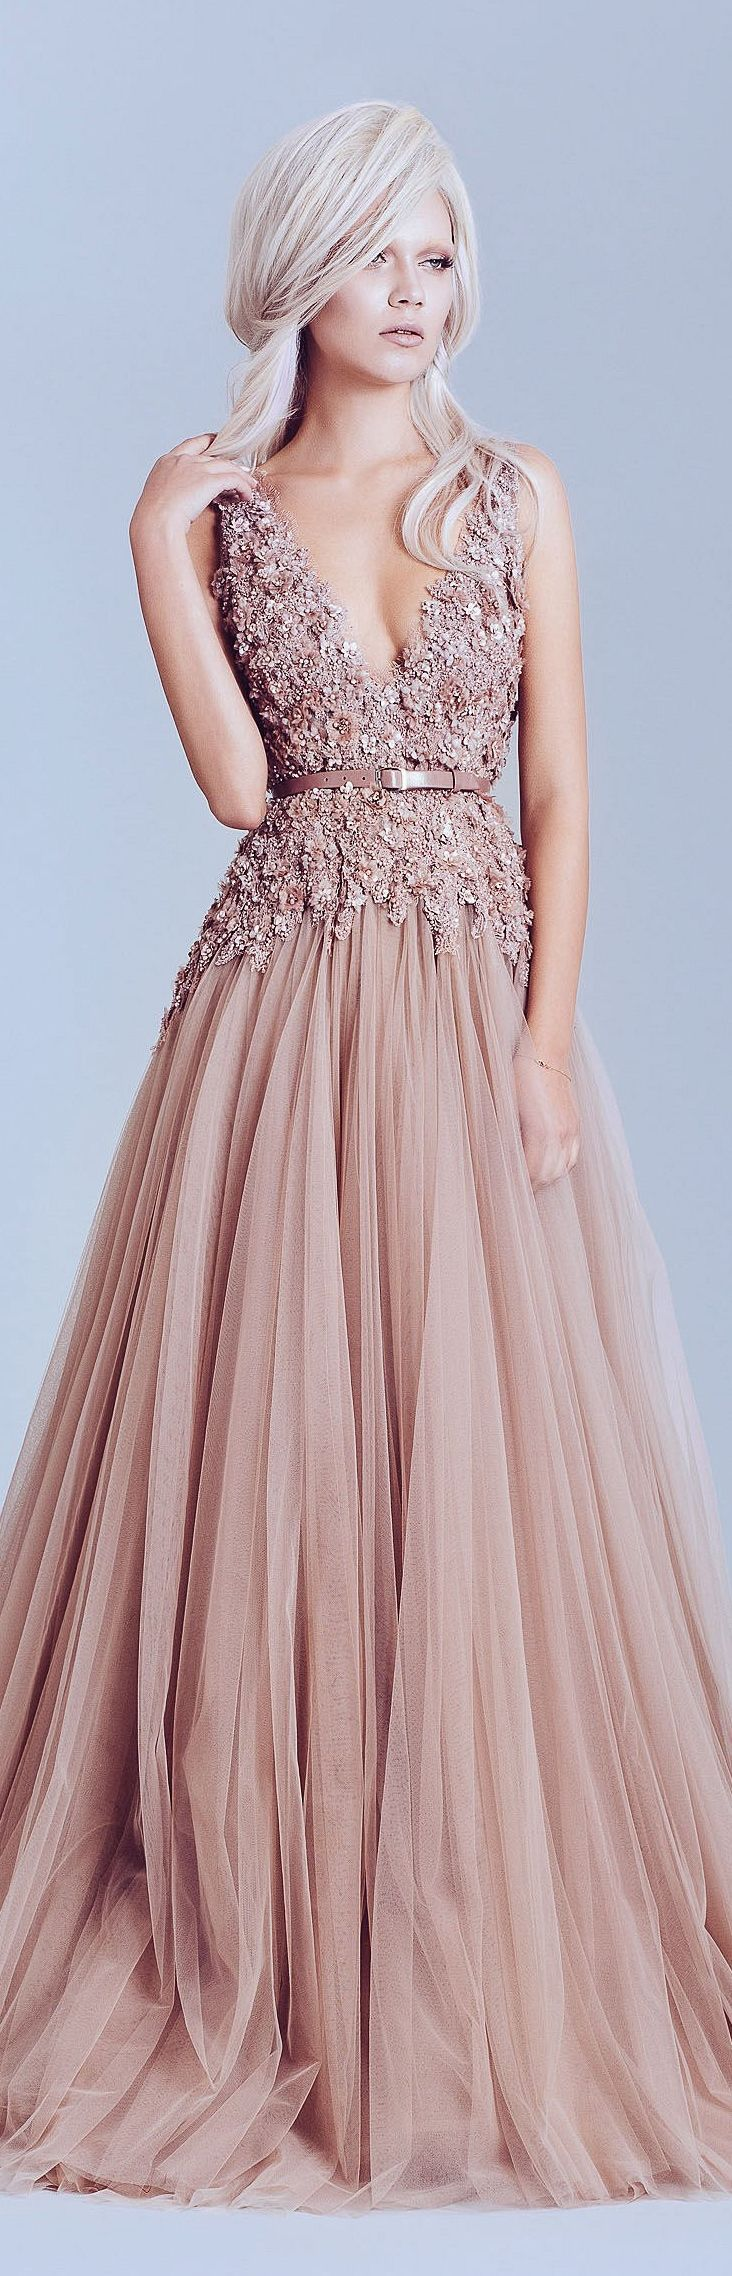 best prom dresses images on pinterest ball gown dress skirt